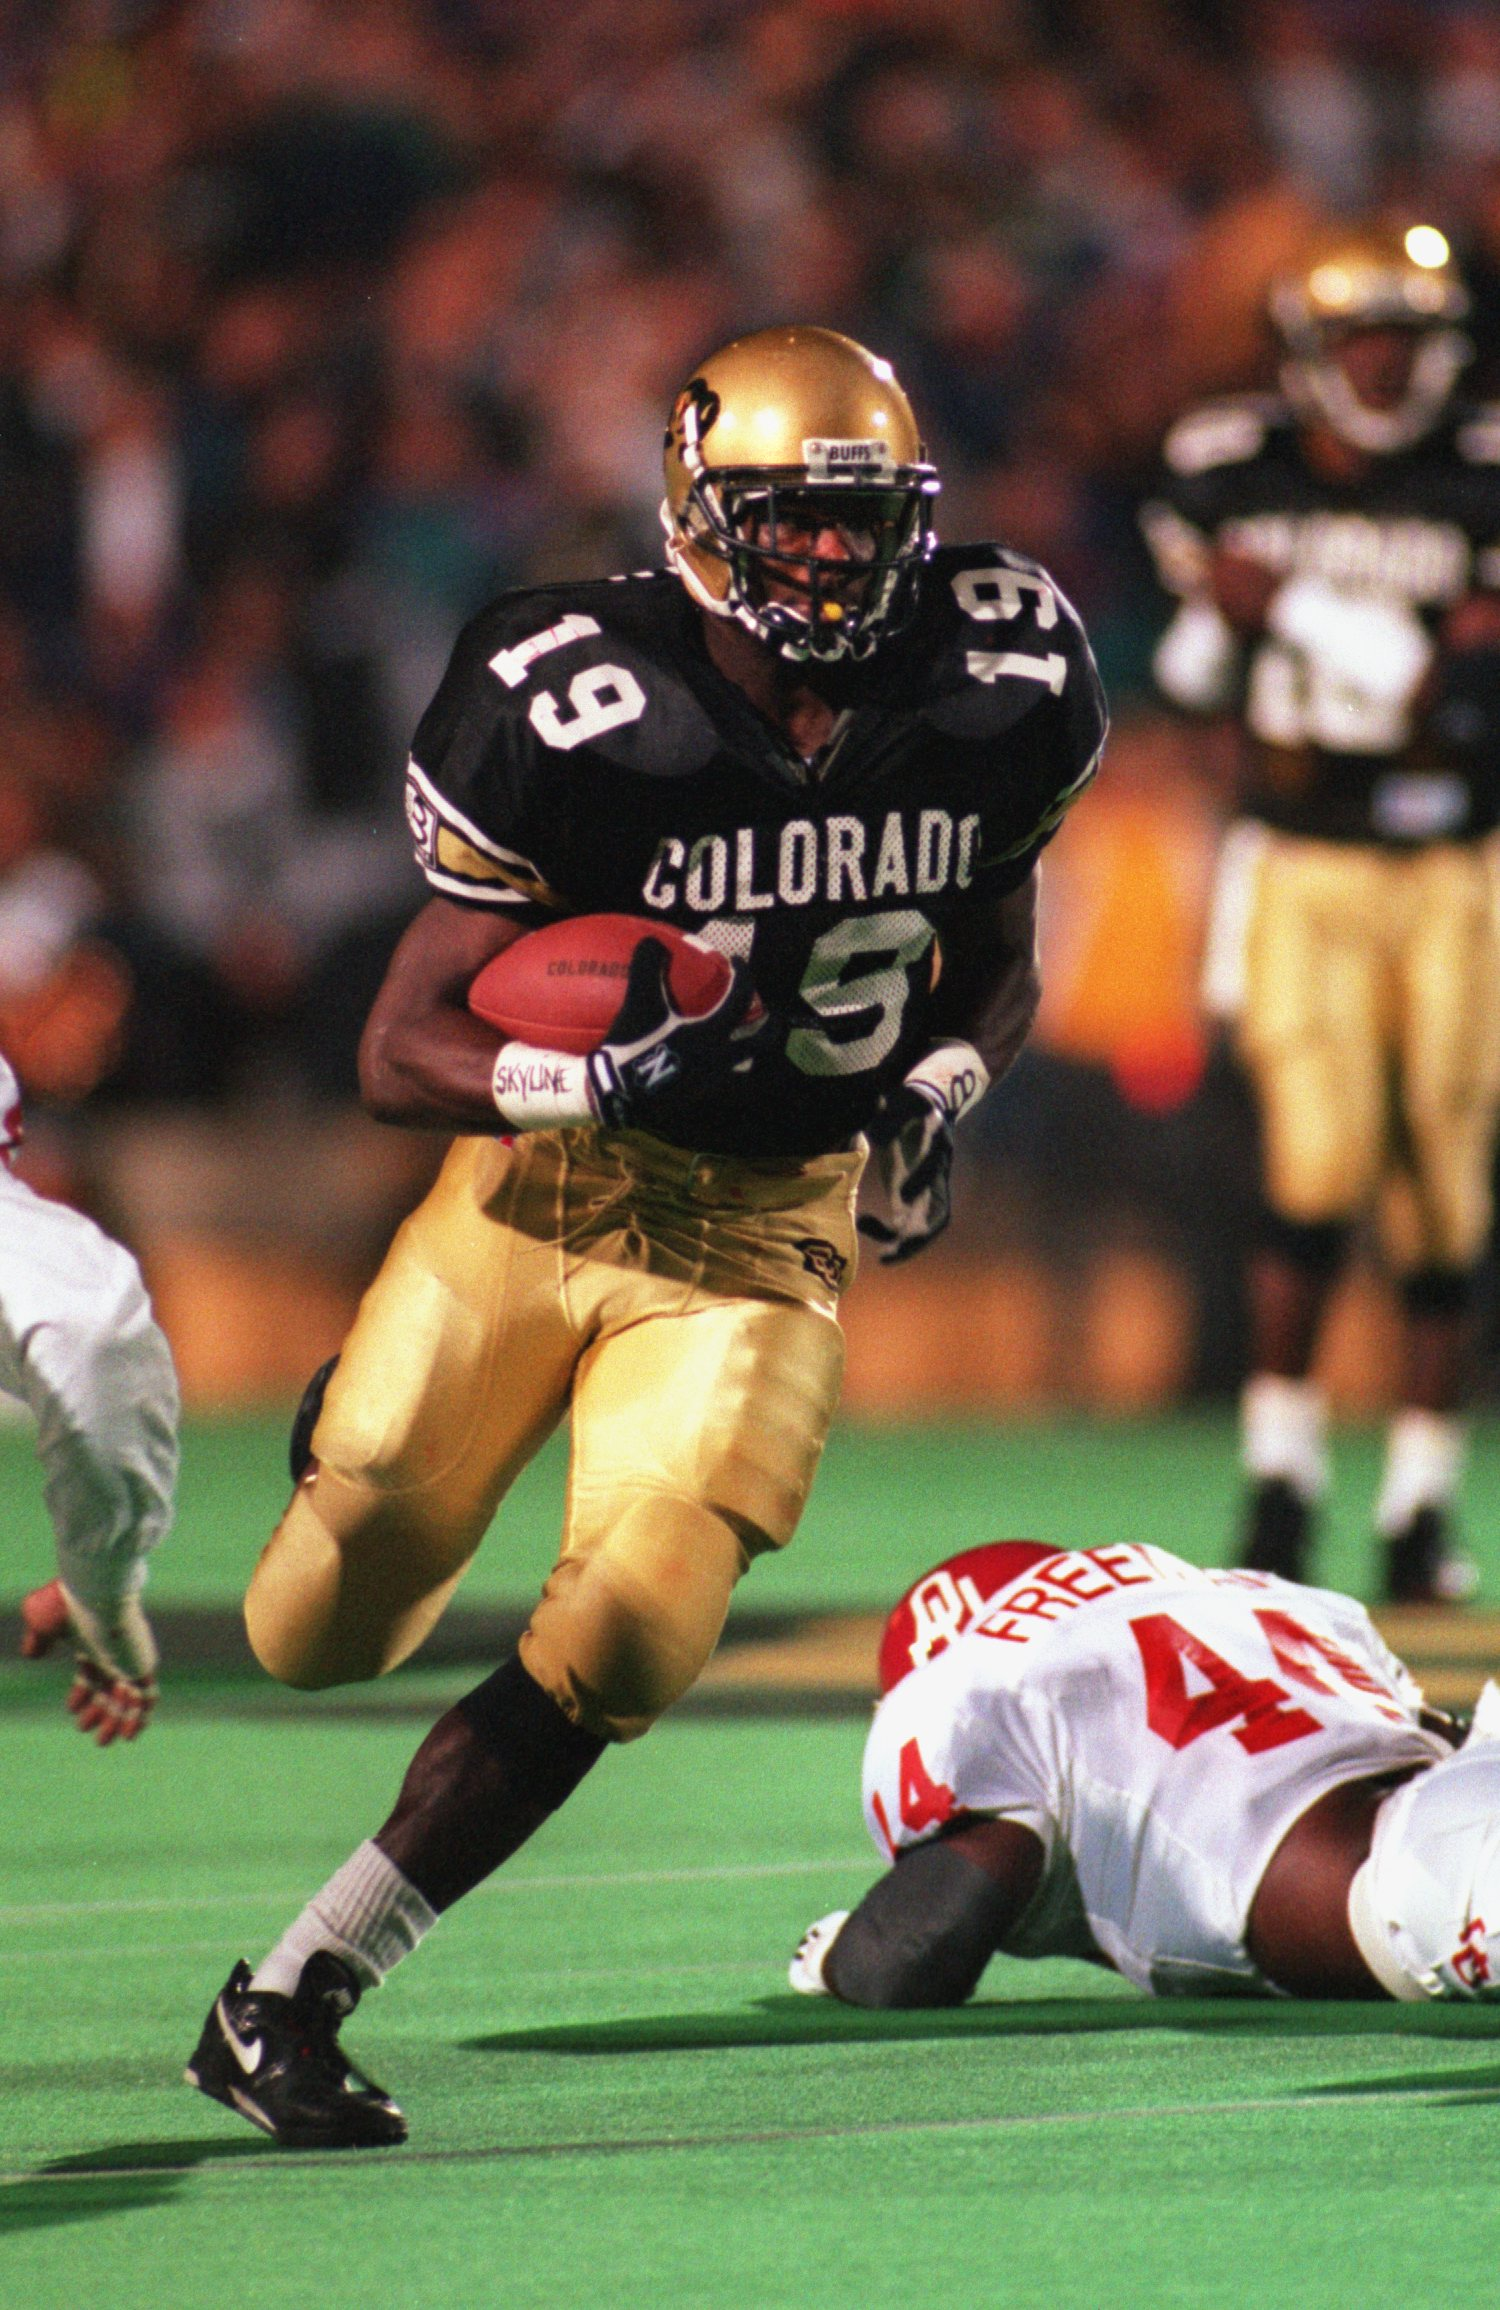 15 Oct 1994: COLORADO RUNNING BACK RASHAAN SALAAM BREAKS INTO THE OPEN FIELD DURING THE BUFFALOES 45-7 VICTORY OVER THE OKLAHOMA SOONERS IN A BIG EIGHT GAME AT FOLSOM FIELD IN BOULDER, COLORADO.